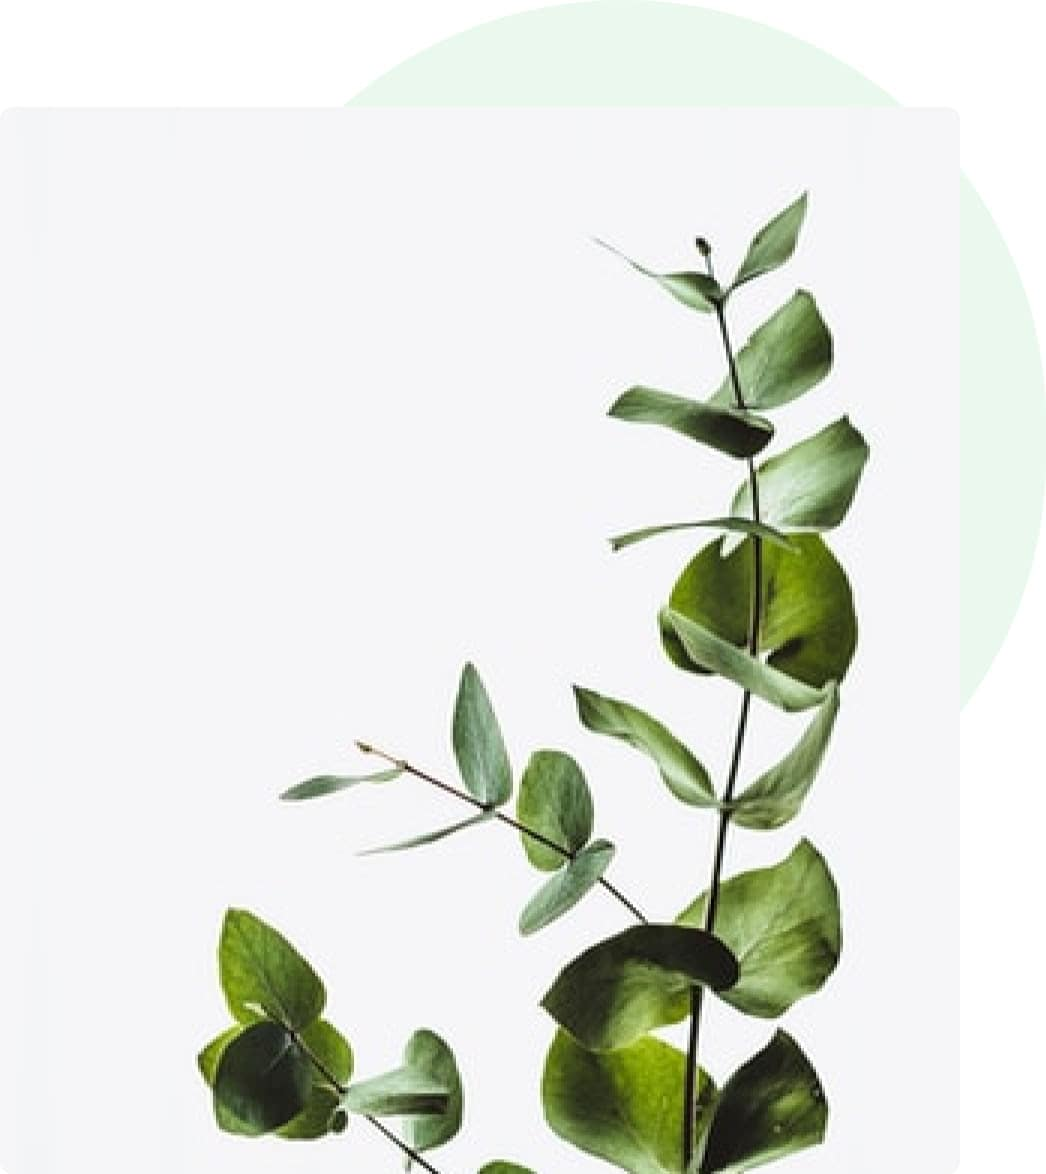 Bright green house plant against white background